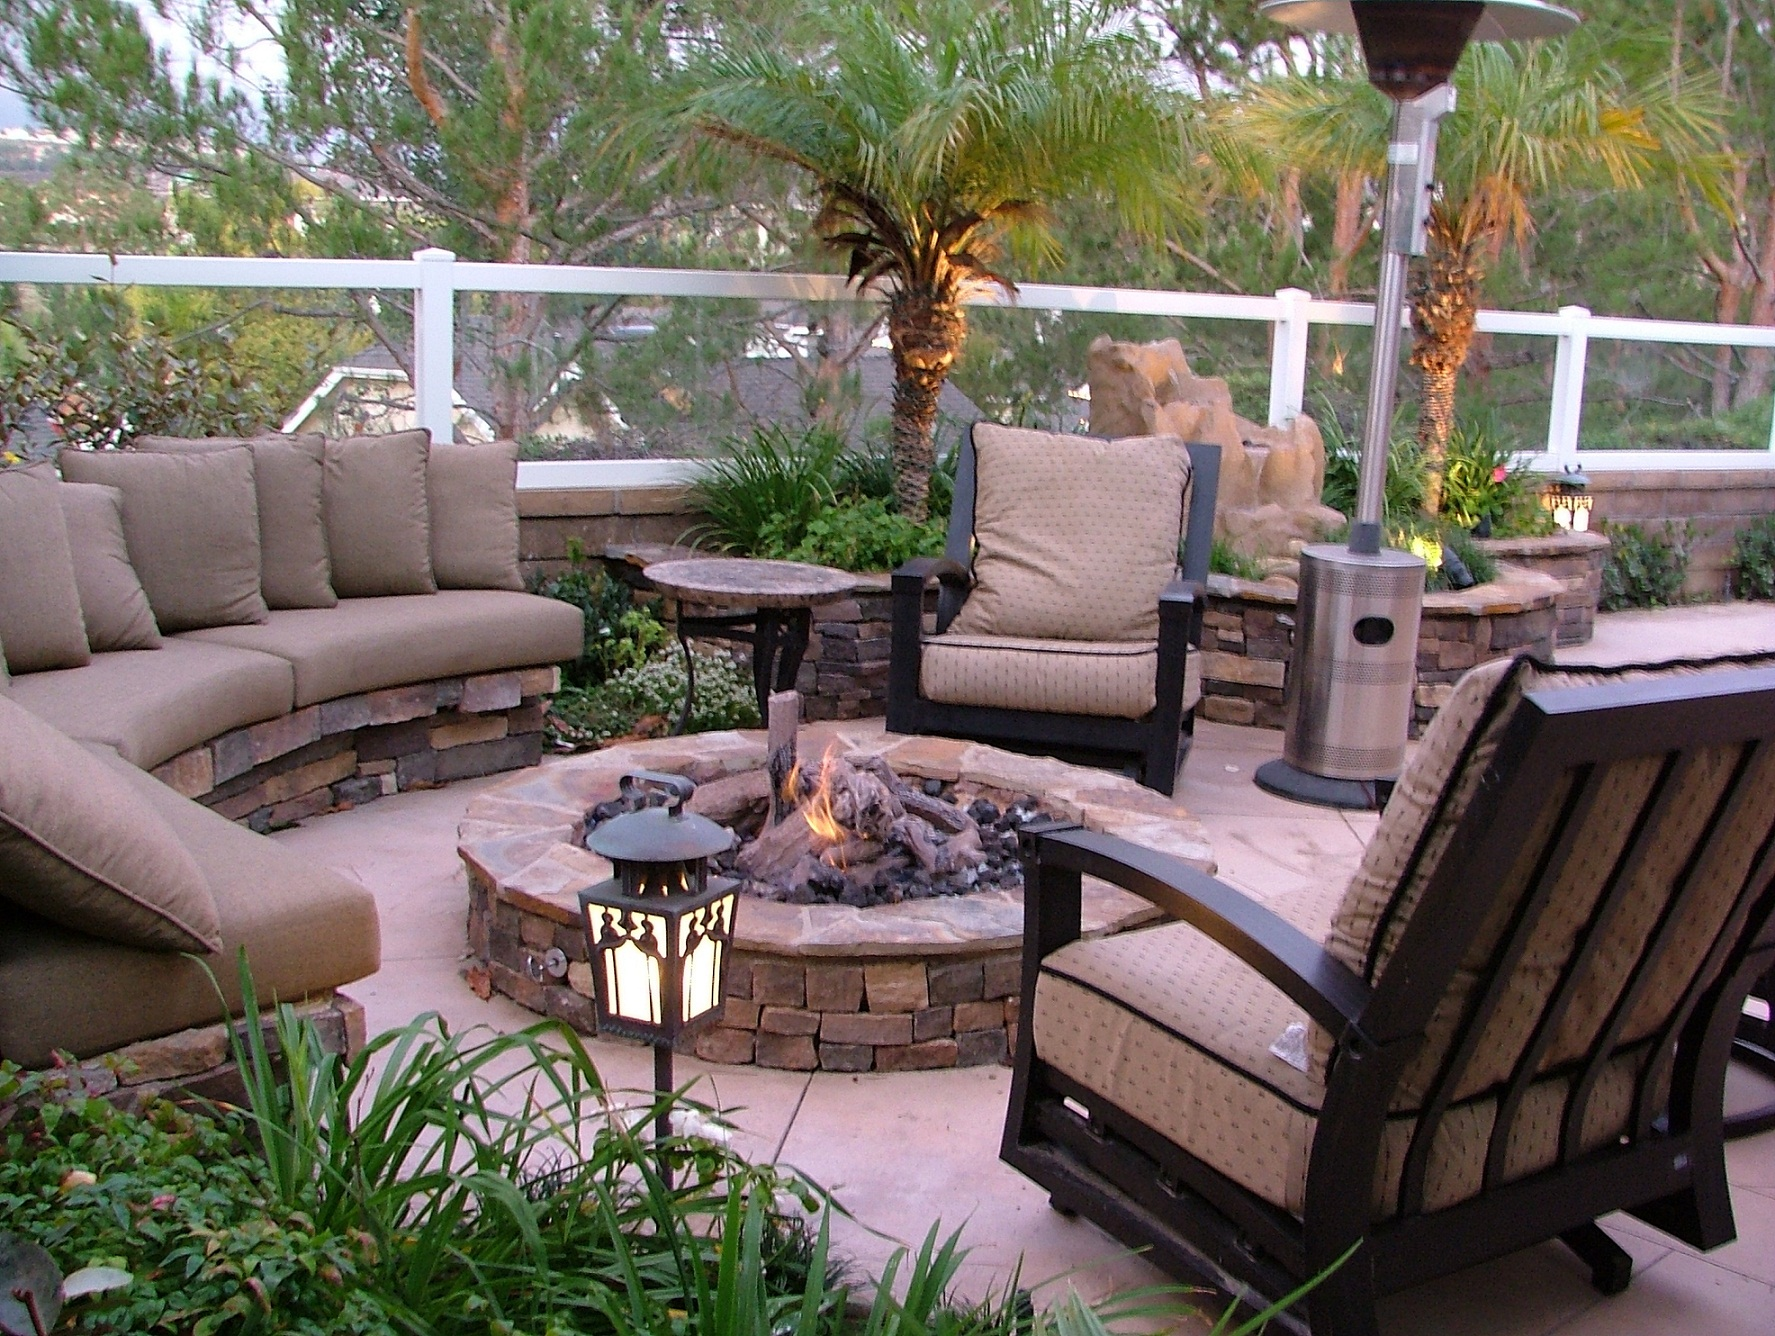 Funeral Home Makeover | Updates For Progressive Funeral ... on Budget Patio Ideas id=80222